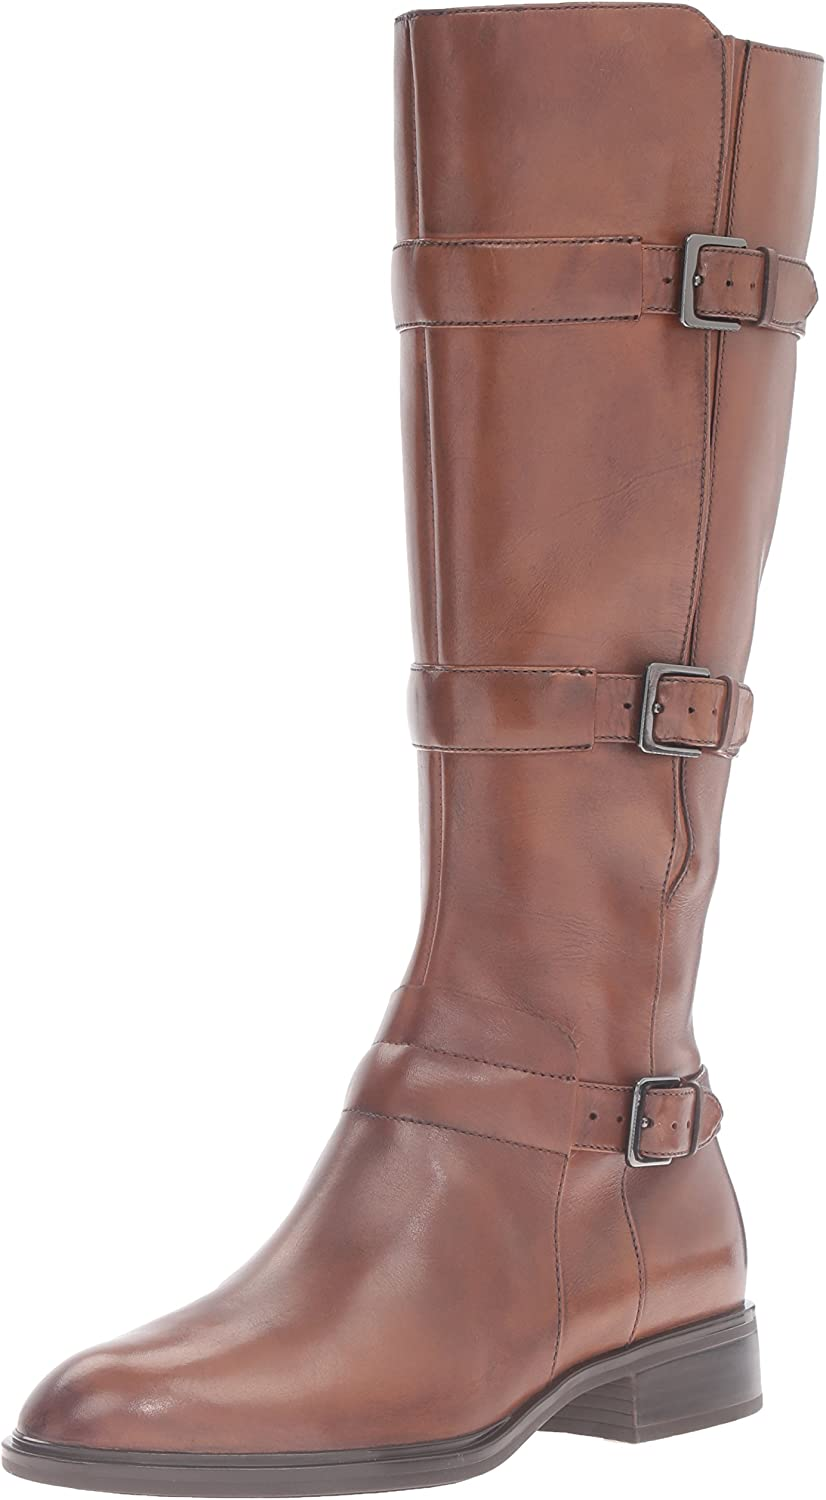 Ecco Womens Chelsea 20 Tall Boot Riding Boot